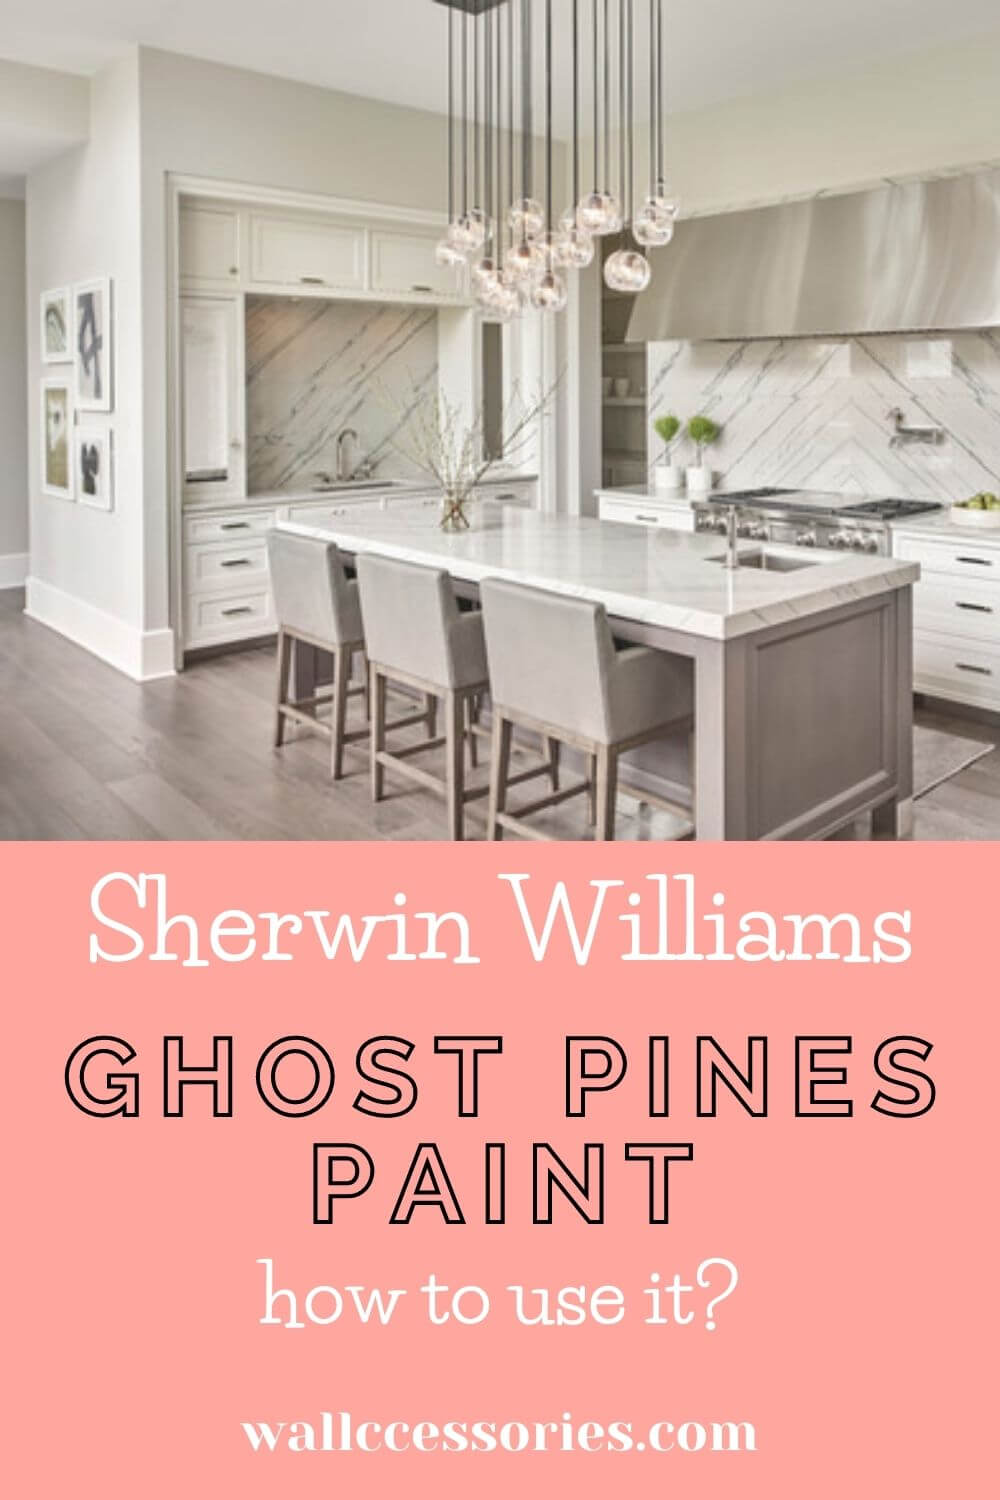 sw ghost pines paint review pinterest